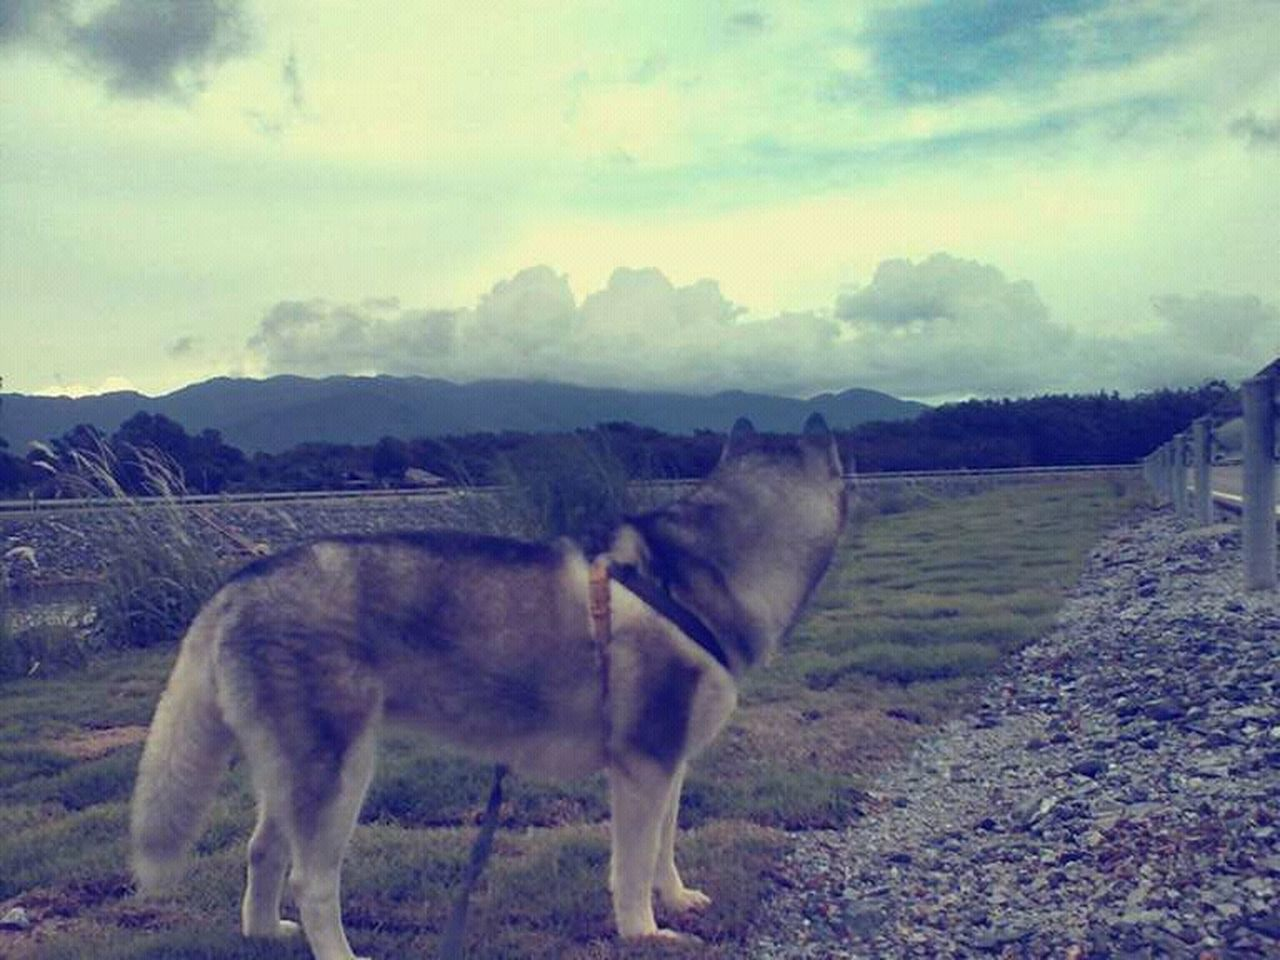 animal themes, domestic animals, one animal, mammal, outdoors, sky, nature, day, field, no people, livestock, landscape, mountain